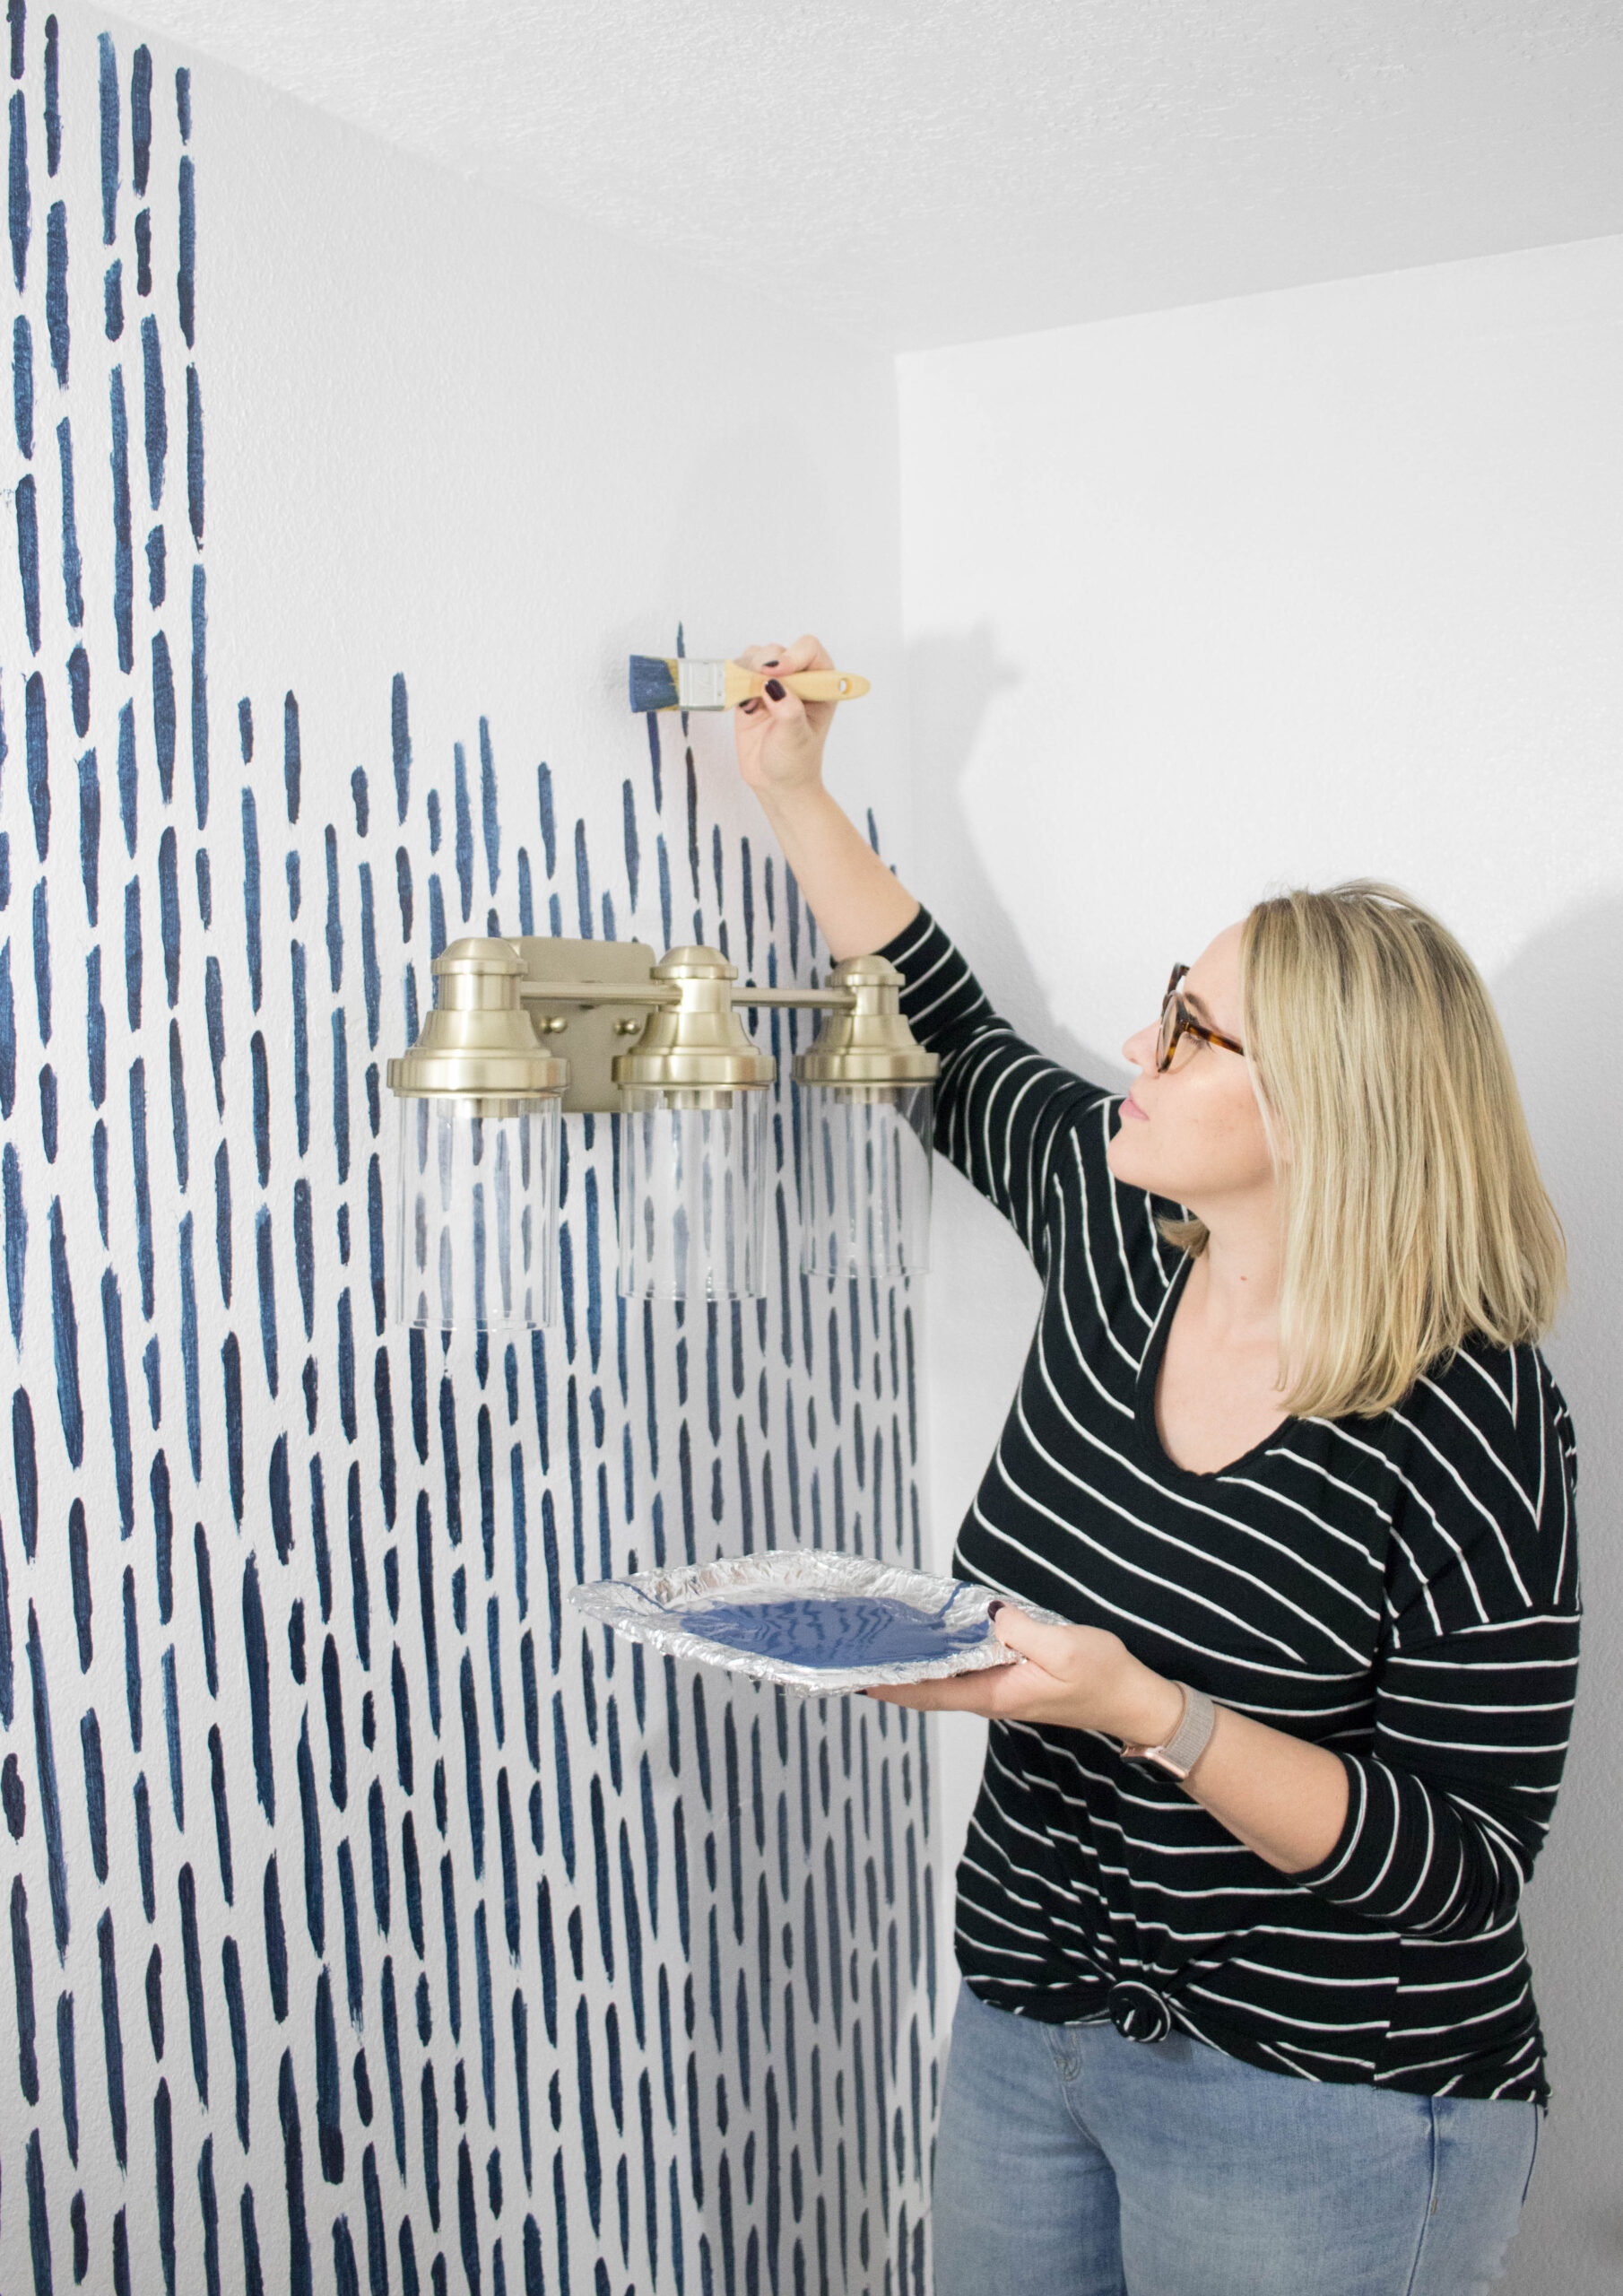 diy accent wall bathroom rustoleum #diy #accentwall #diypainting